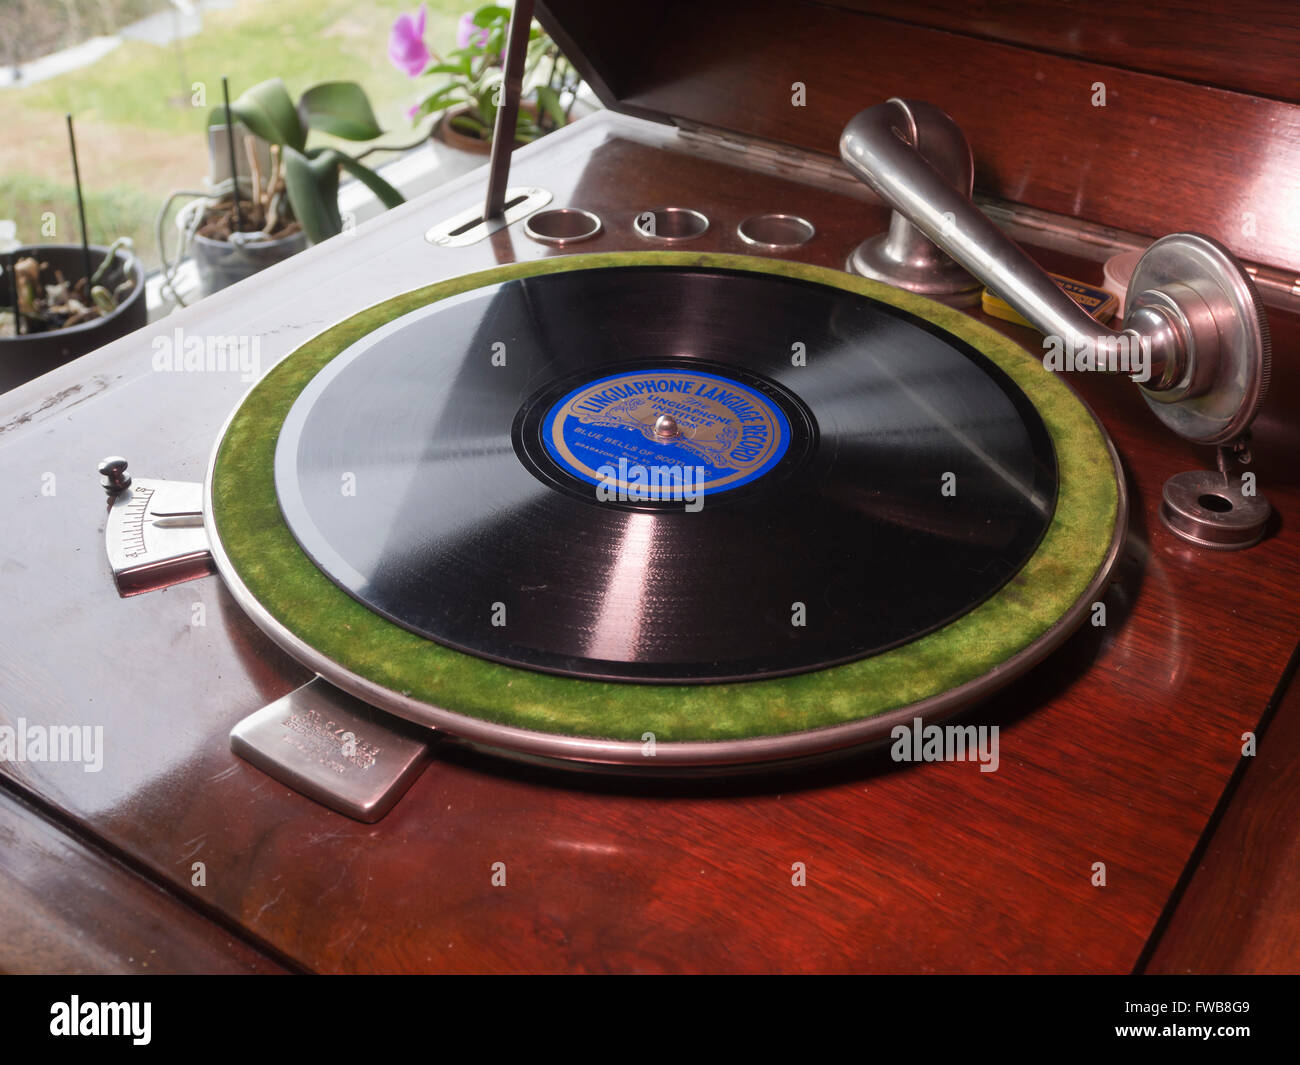 Linguaphone record language course, English songs, old shellac record on vintage wind up gramophone - Stock Image